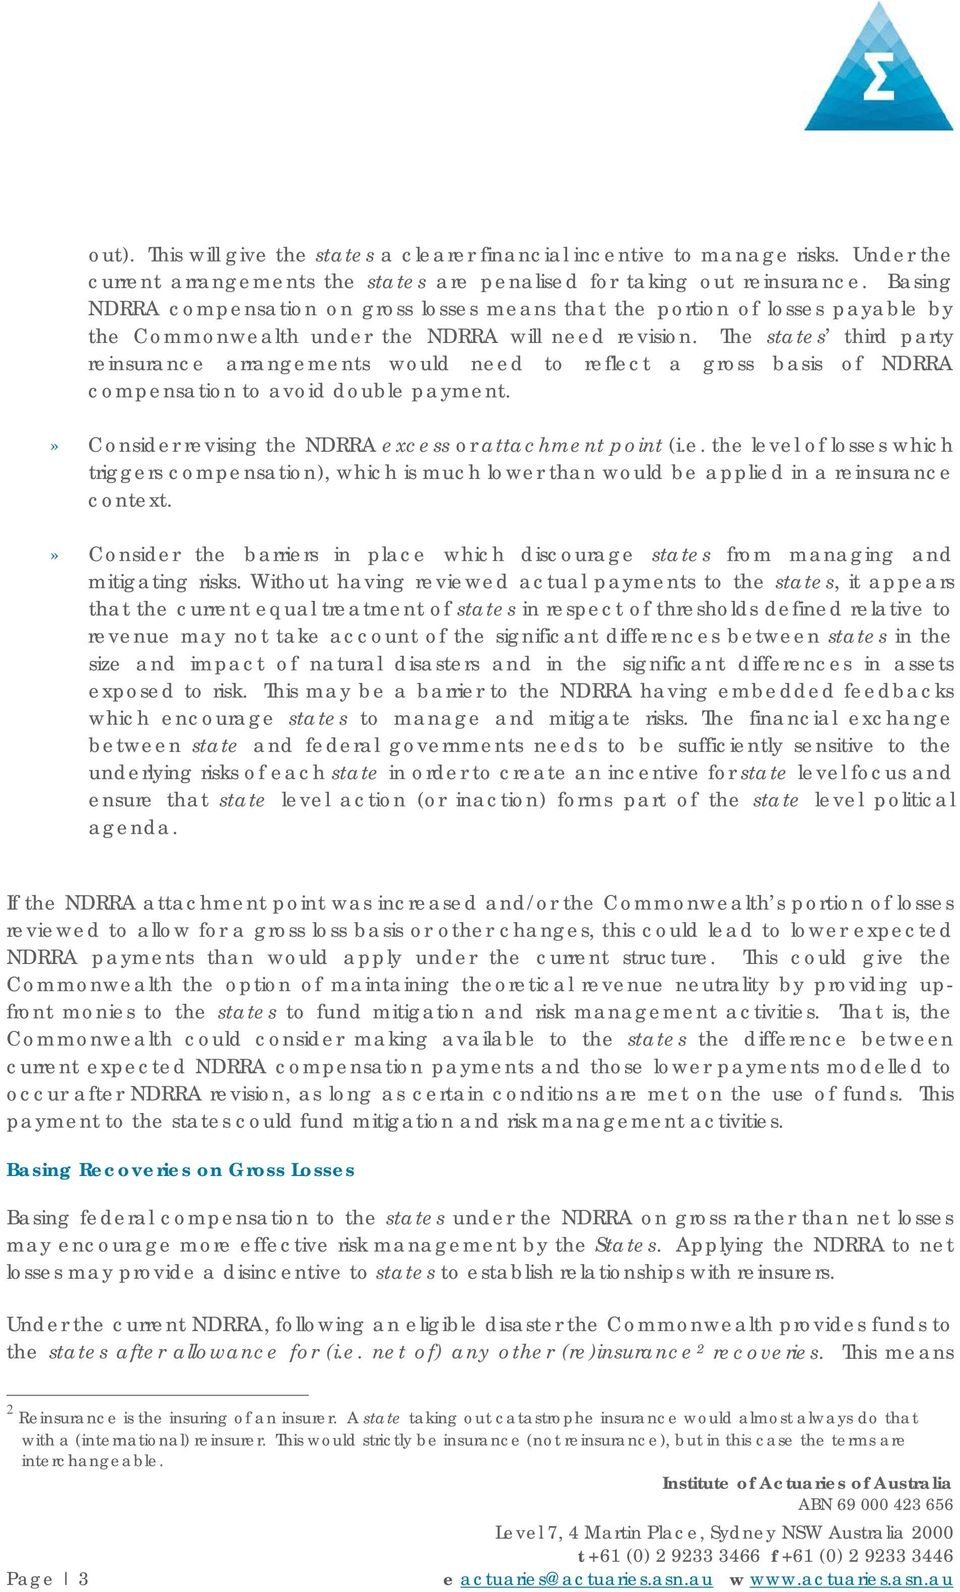 The states third party reinsurance arrangements would need to reflect a gross basis of NDRRA compensation to avoid double payment.» Consider revising the NDRRA excess or attachment point (i.e. the level of losses which triggers compensation), which is much lower than would be applied in a reinsurance context.